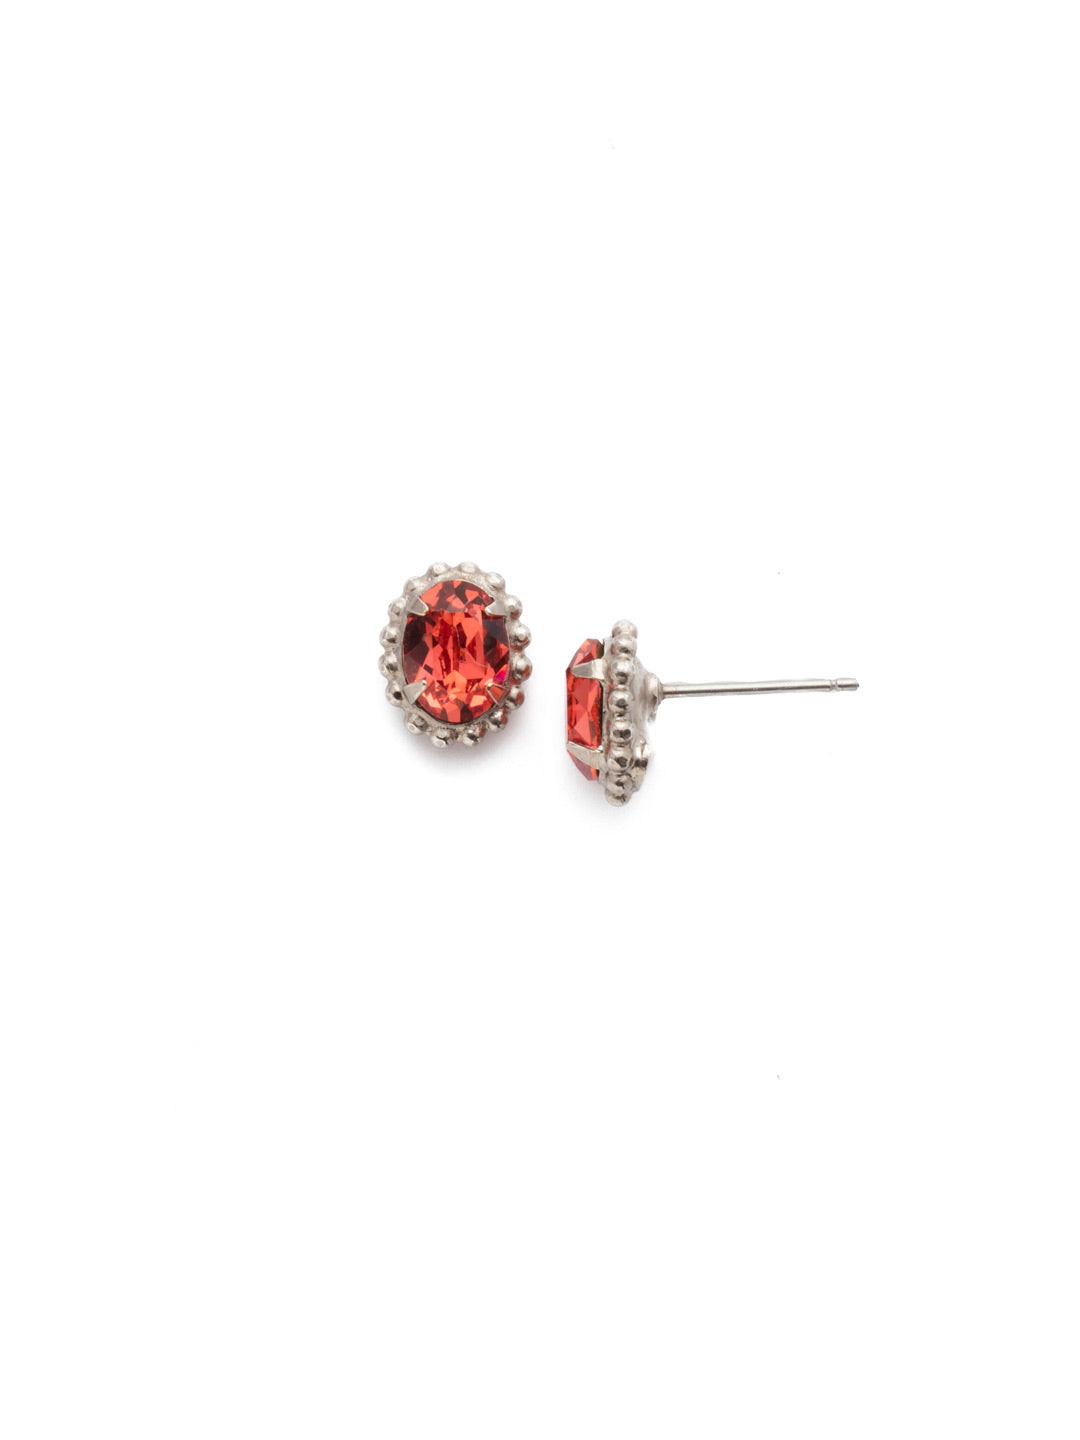 Maisie Stud Earrings - EEH11ASCRL